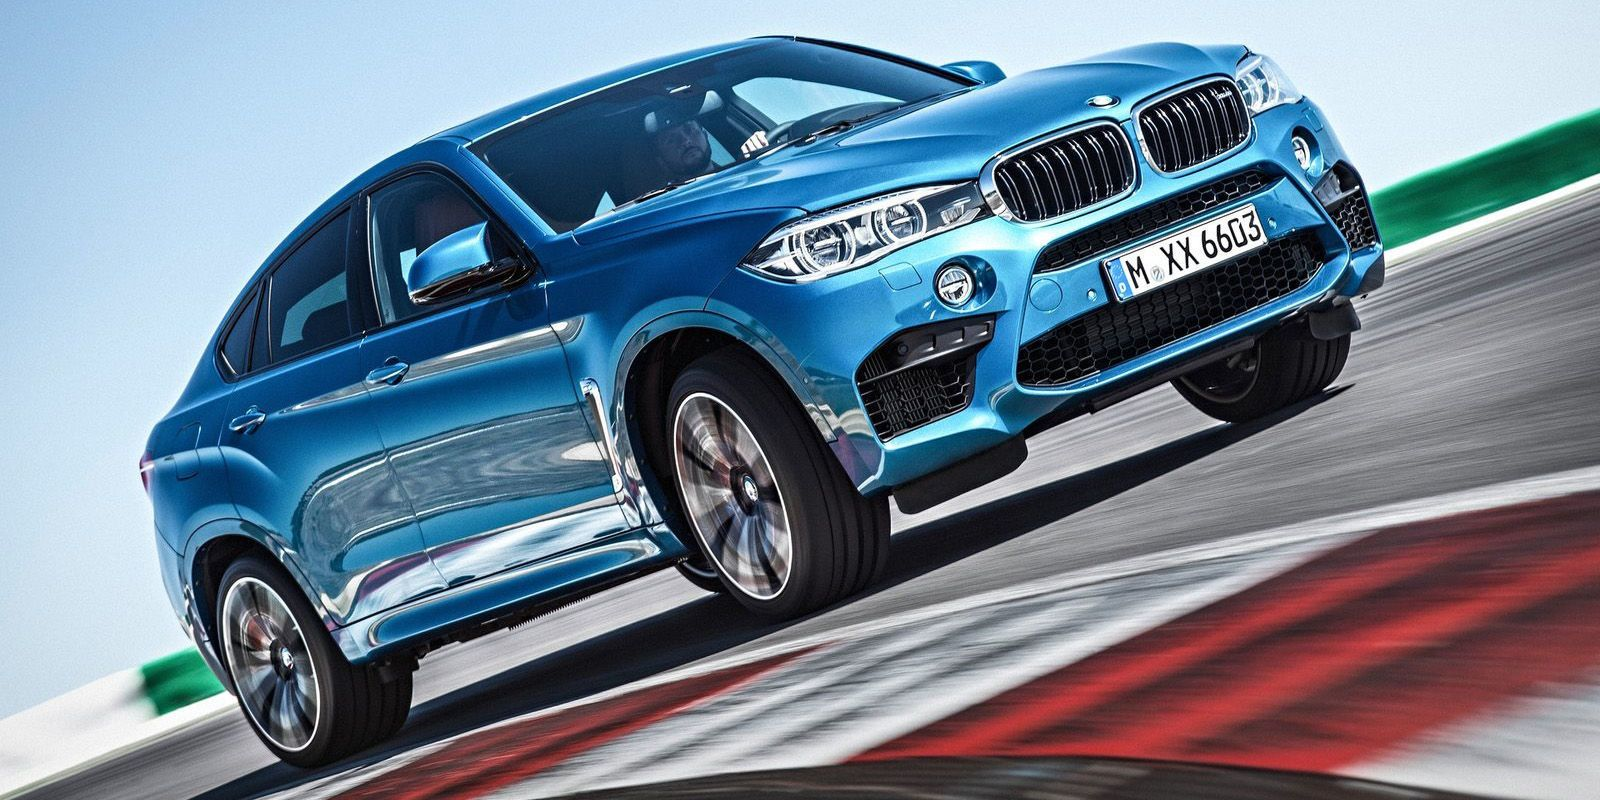 Report: The BMW X6 M Is Faster at the Nurburgring Than an E46 M3